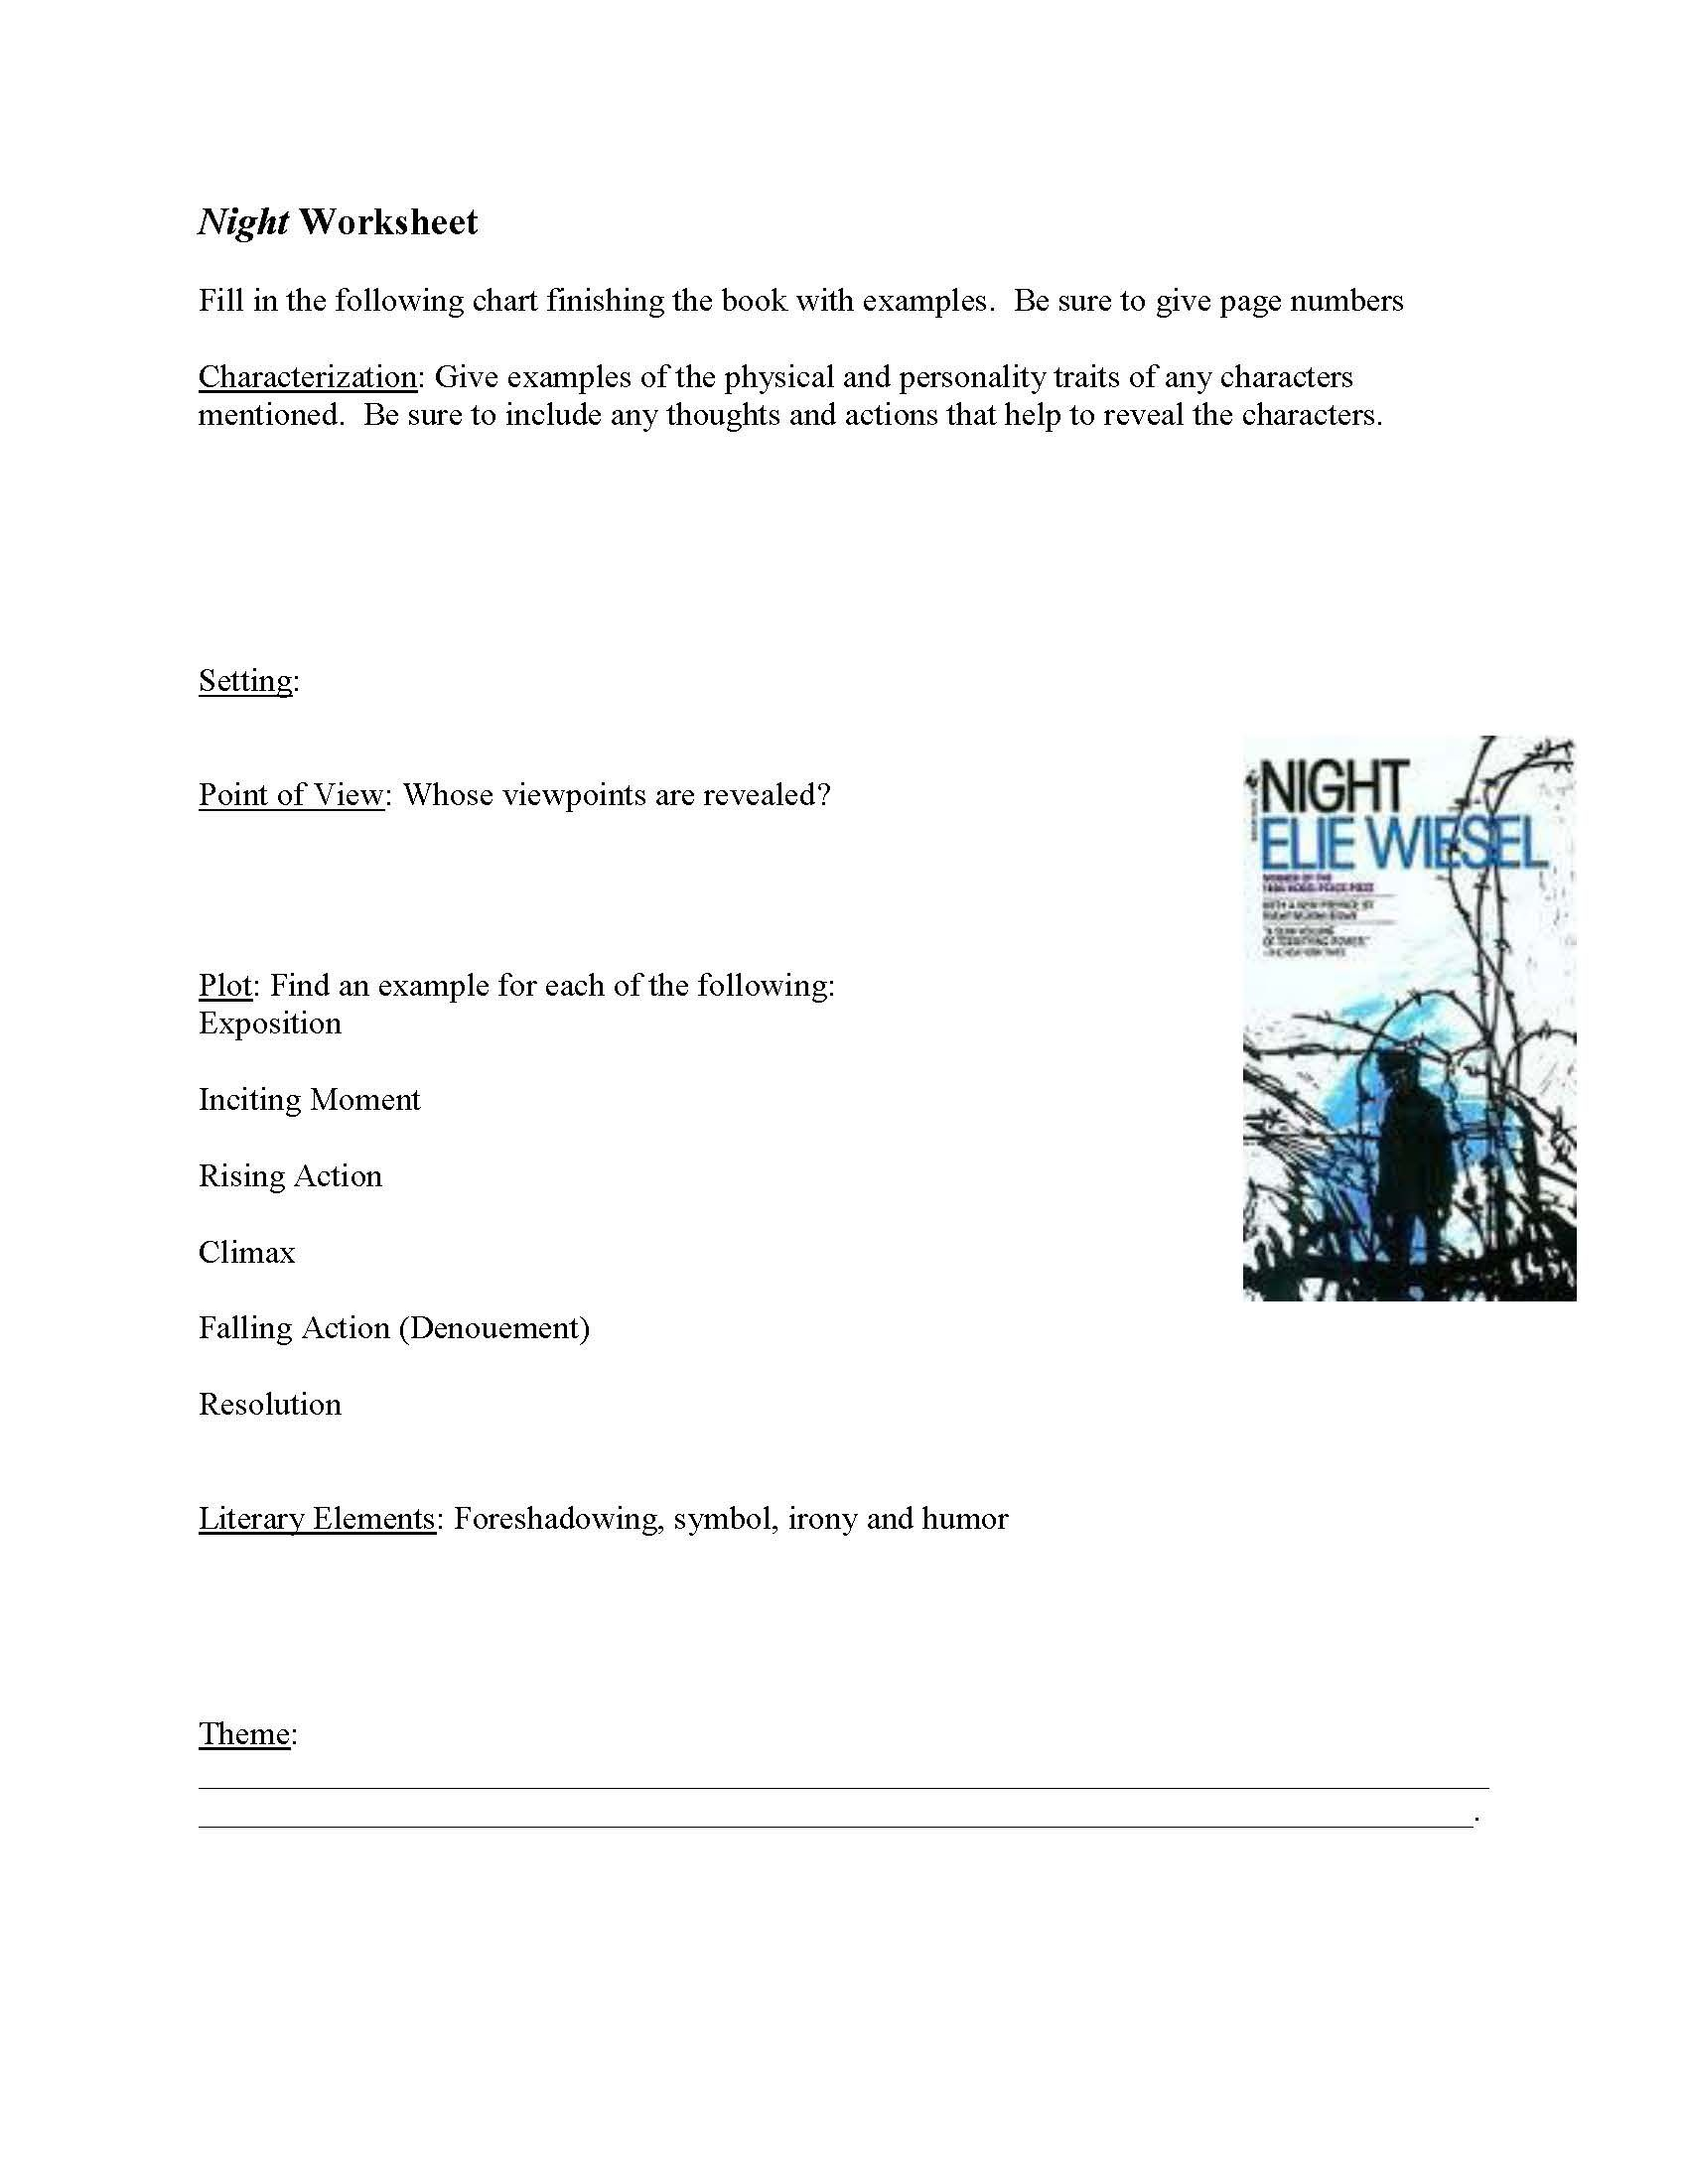 Worksheets Night Elie Wiesel Worksheets get the 35 page unit download it from httpwww httpwww